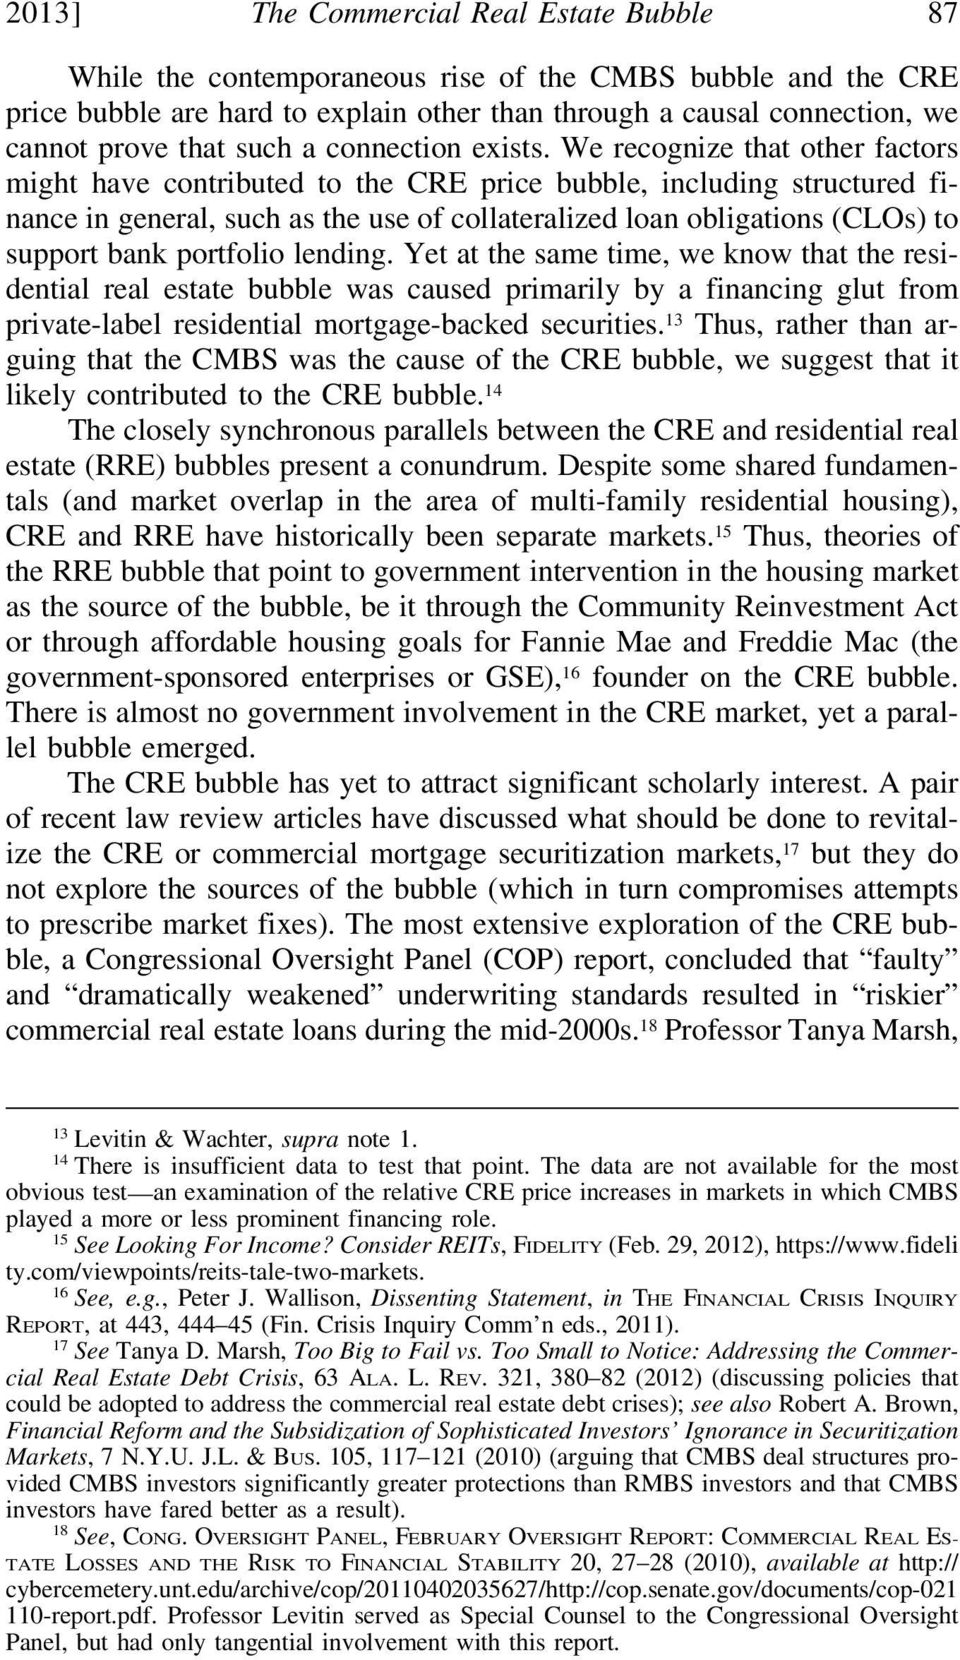 We recognize that other factors might have contributed to the CRE price bubble, including structured finance in general, such as the use of collateralized loan obligations (CLOs) to support bank